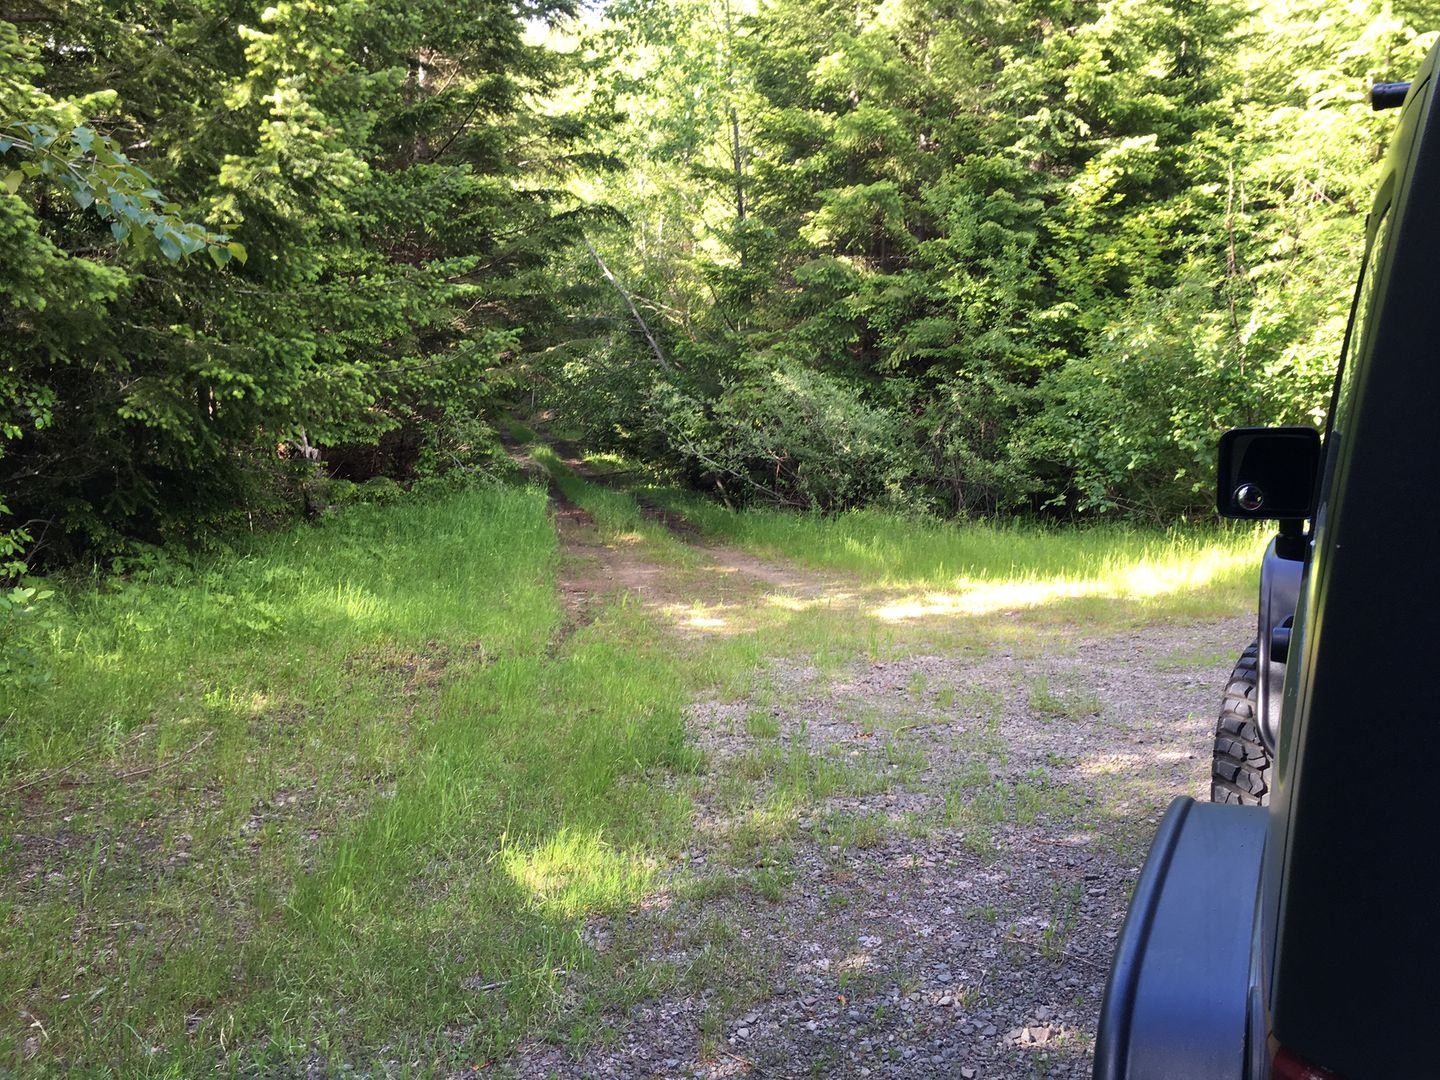 Midnight Creek / NF Road 7010 - Waypoint 7: Trail Intersection / #3424